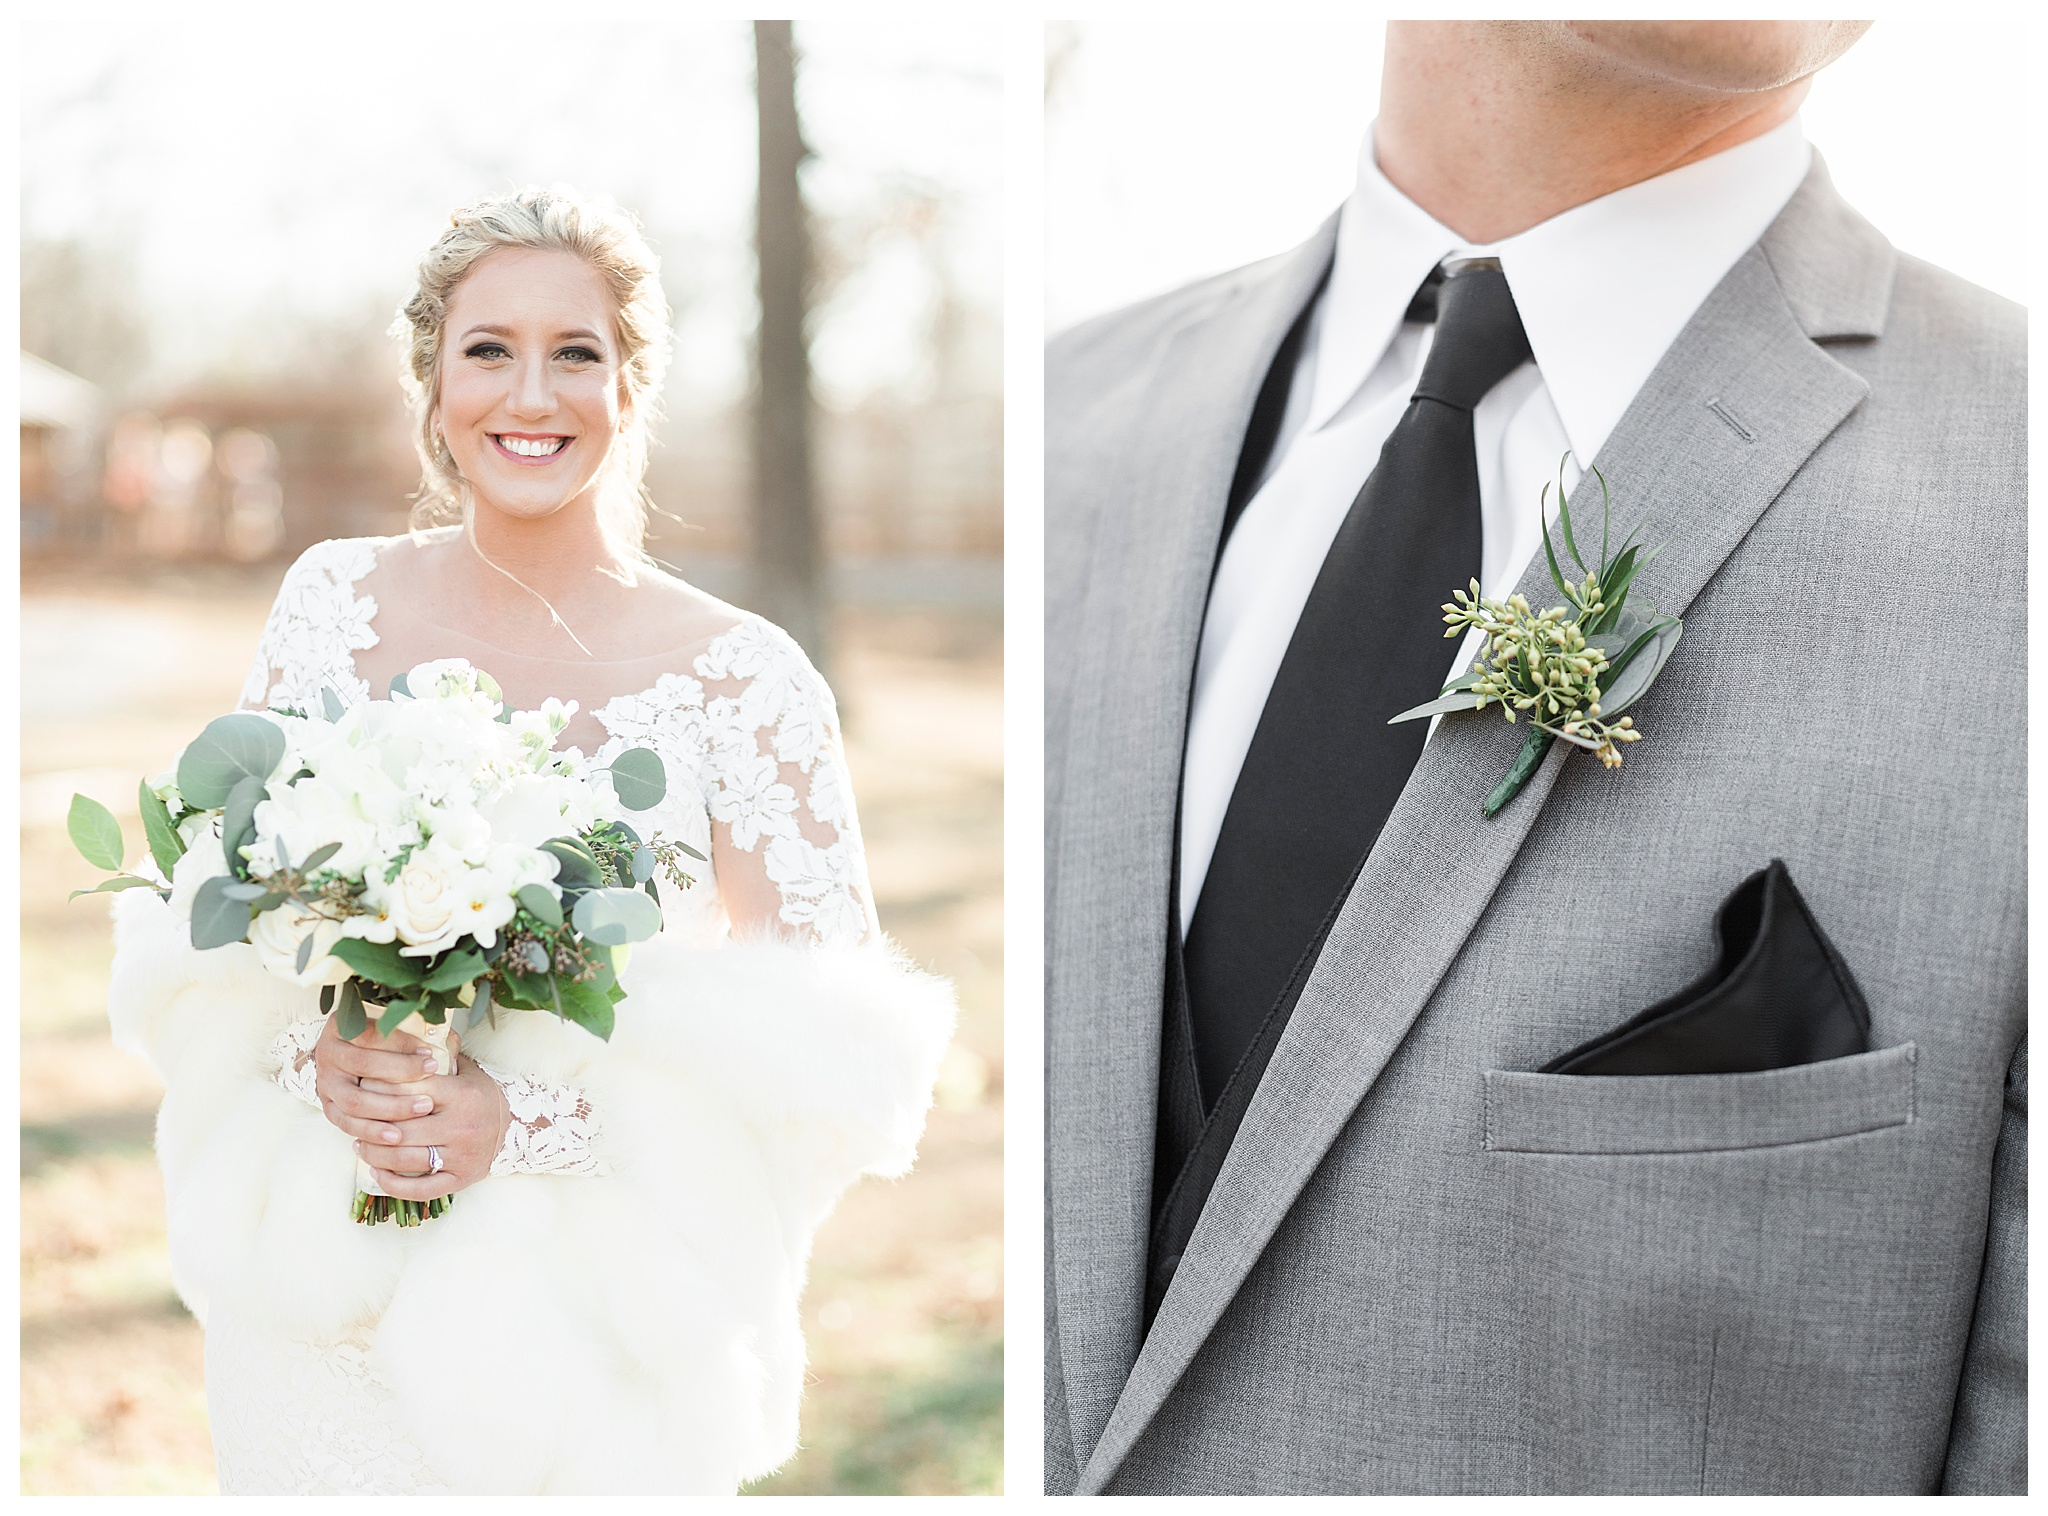 I was so happy that McKenna and Justin's January wedding day was warm and sunny! Mckenna looked stunning in her lacey sleeve wedding gown and fuax fur wrap. Love It! #thebarnatthesprings #arkansaswedding #winterweddig #photolove